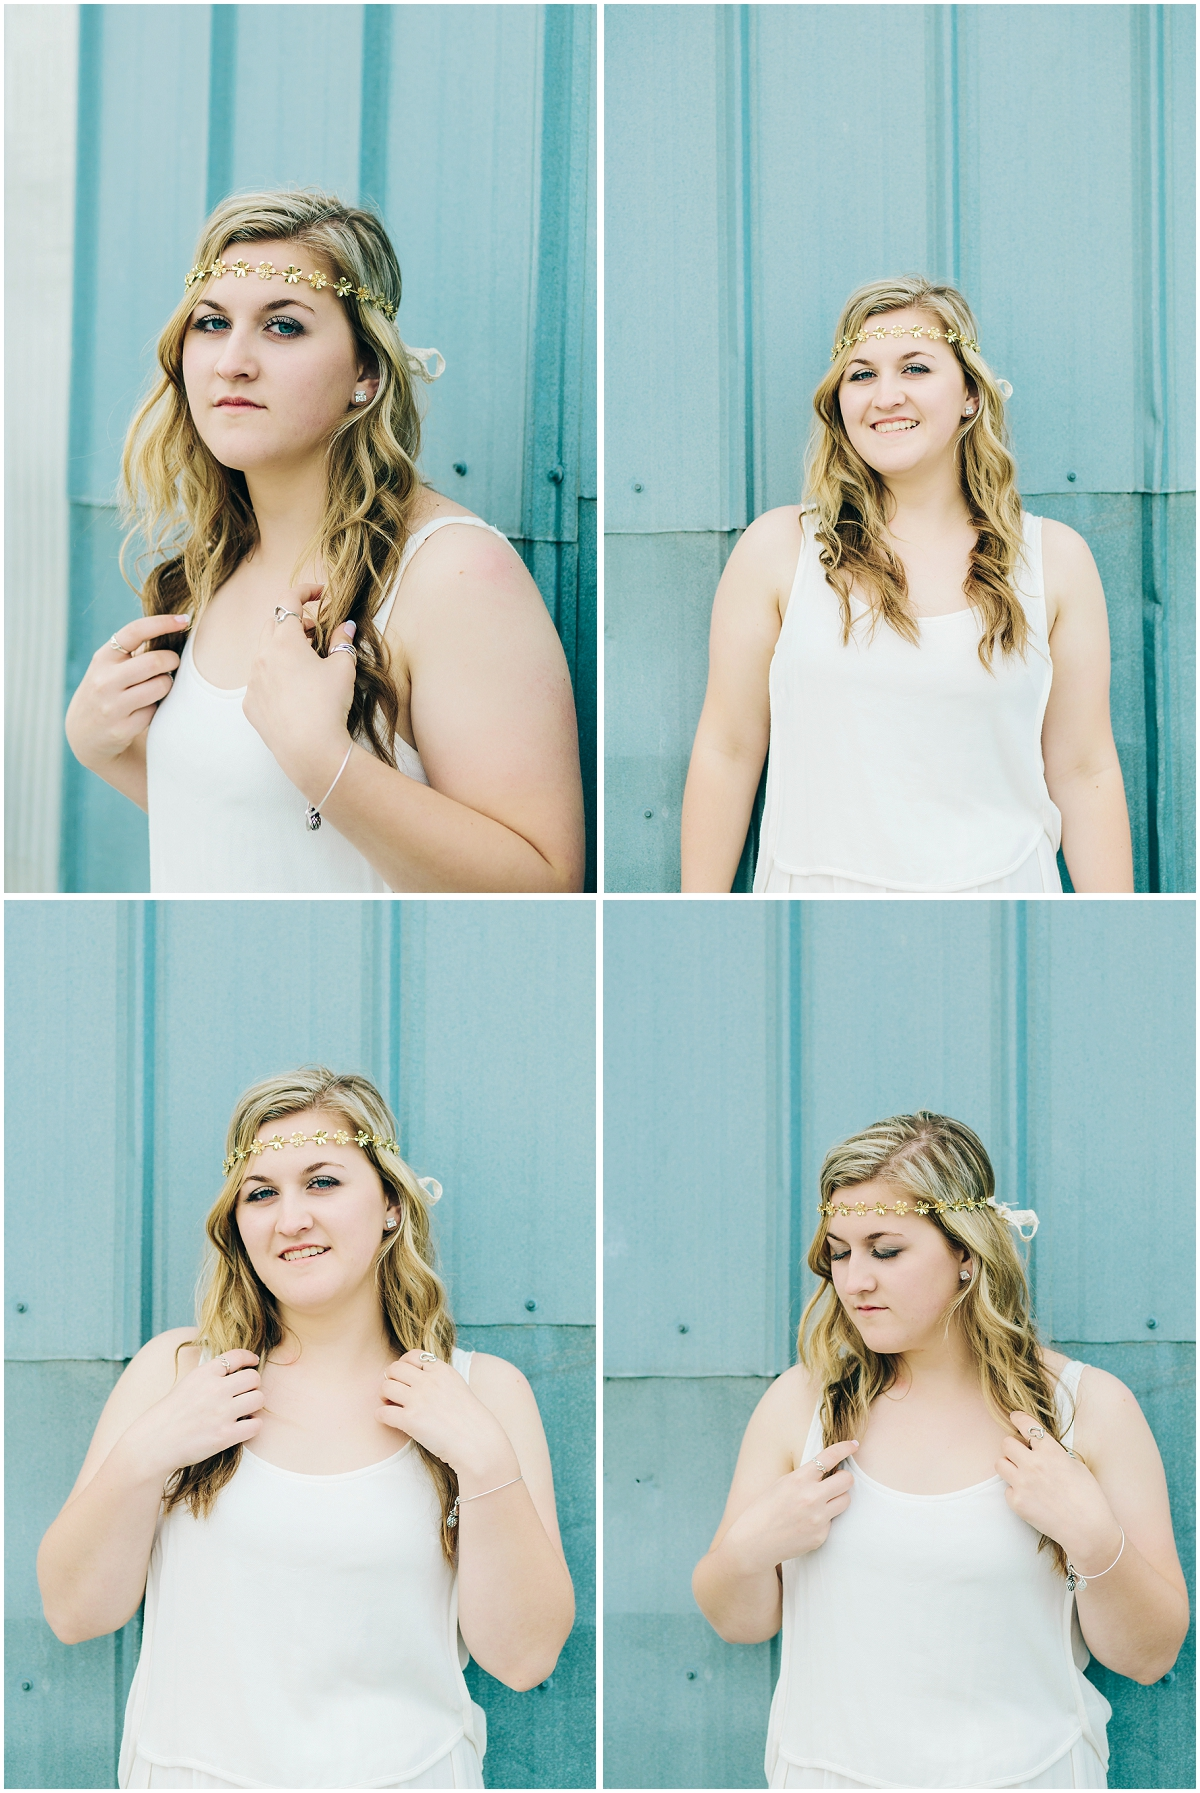 alliston senior photography 277_Alliston-Tottenham-High-School-Senior Photography FIlm.jpg